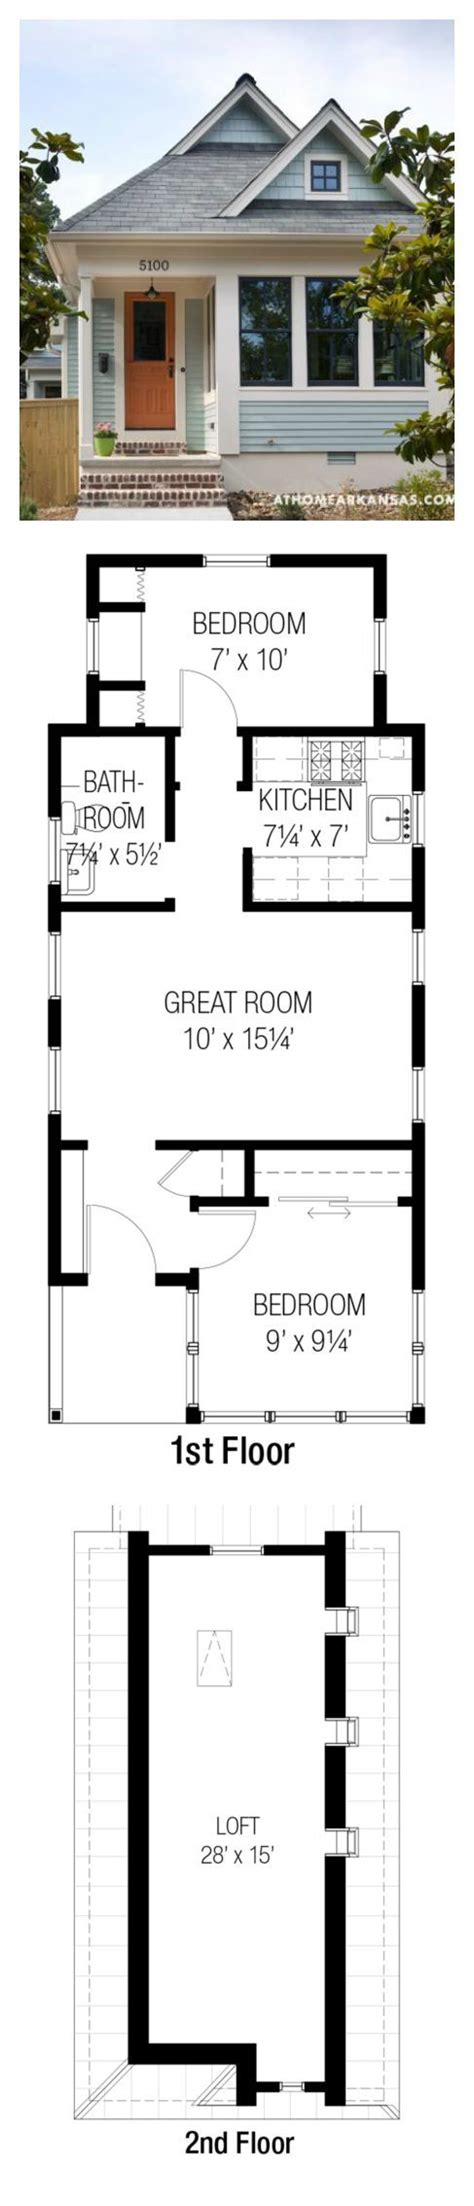 12 best images about tiny house floor plans double wide best tiny house plans ideas small home 2 bedroom plan of